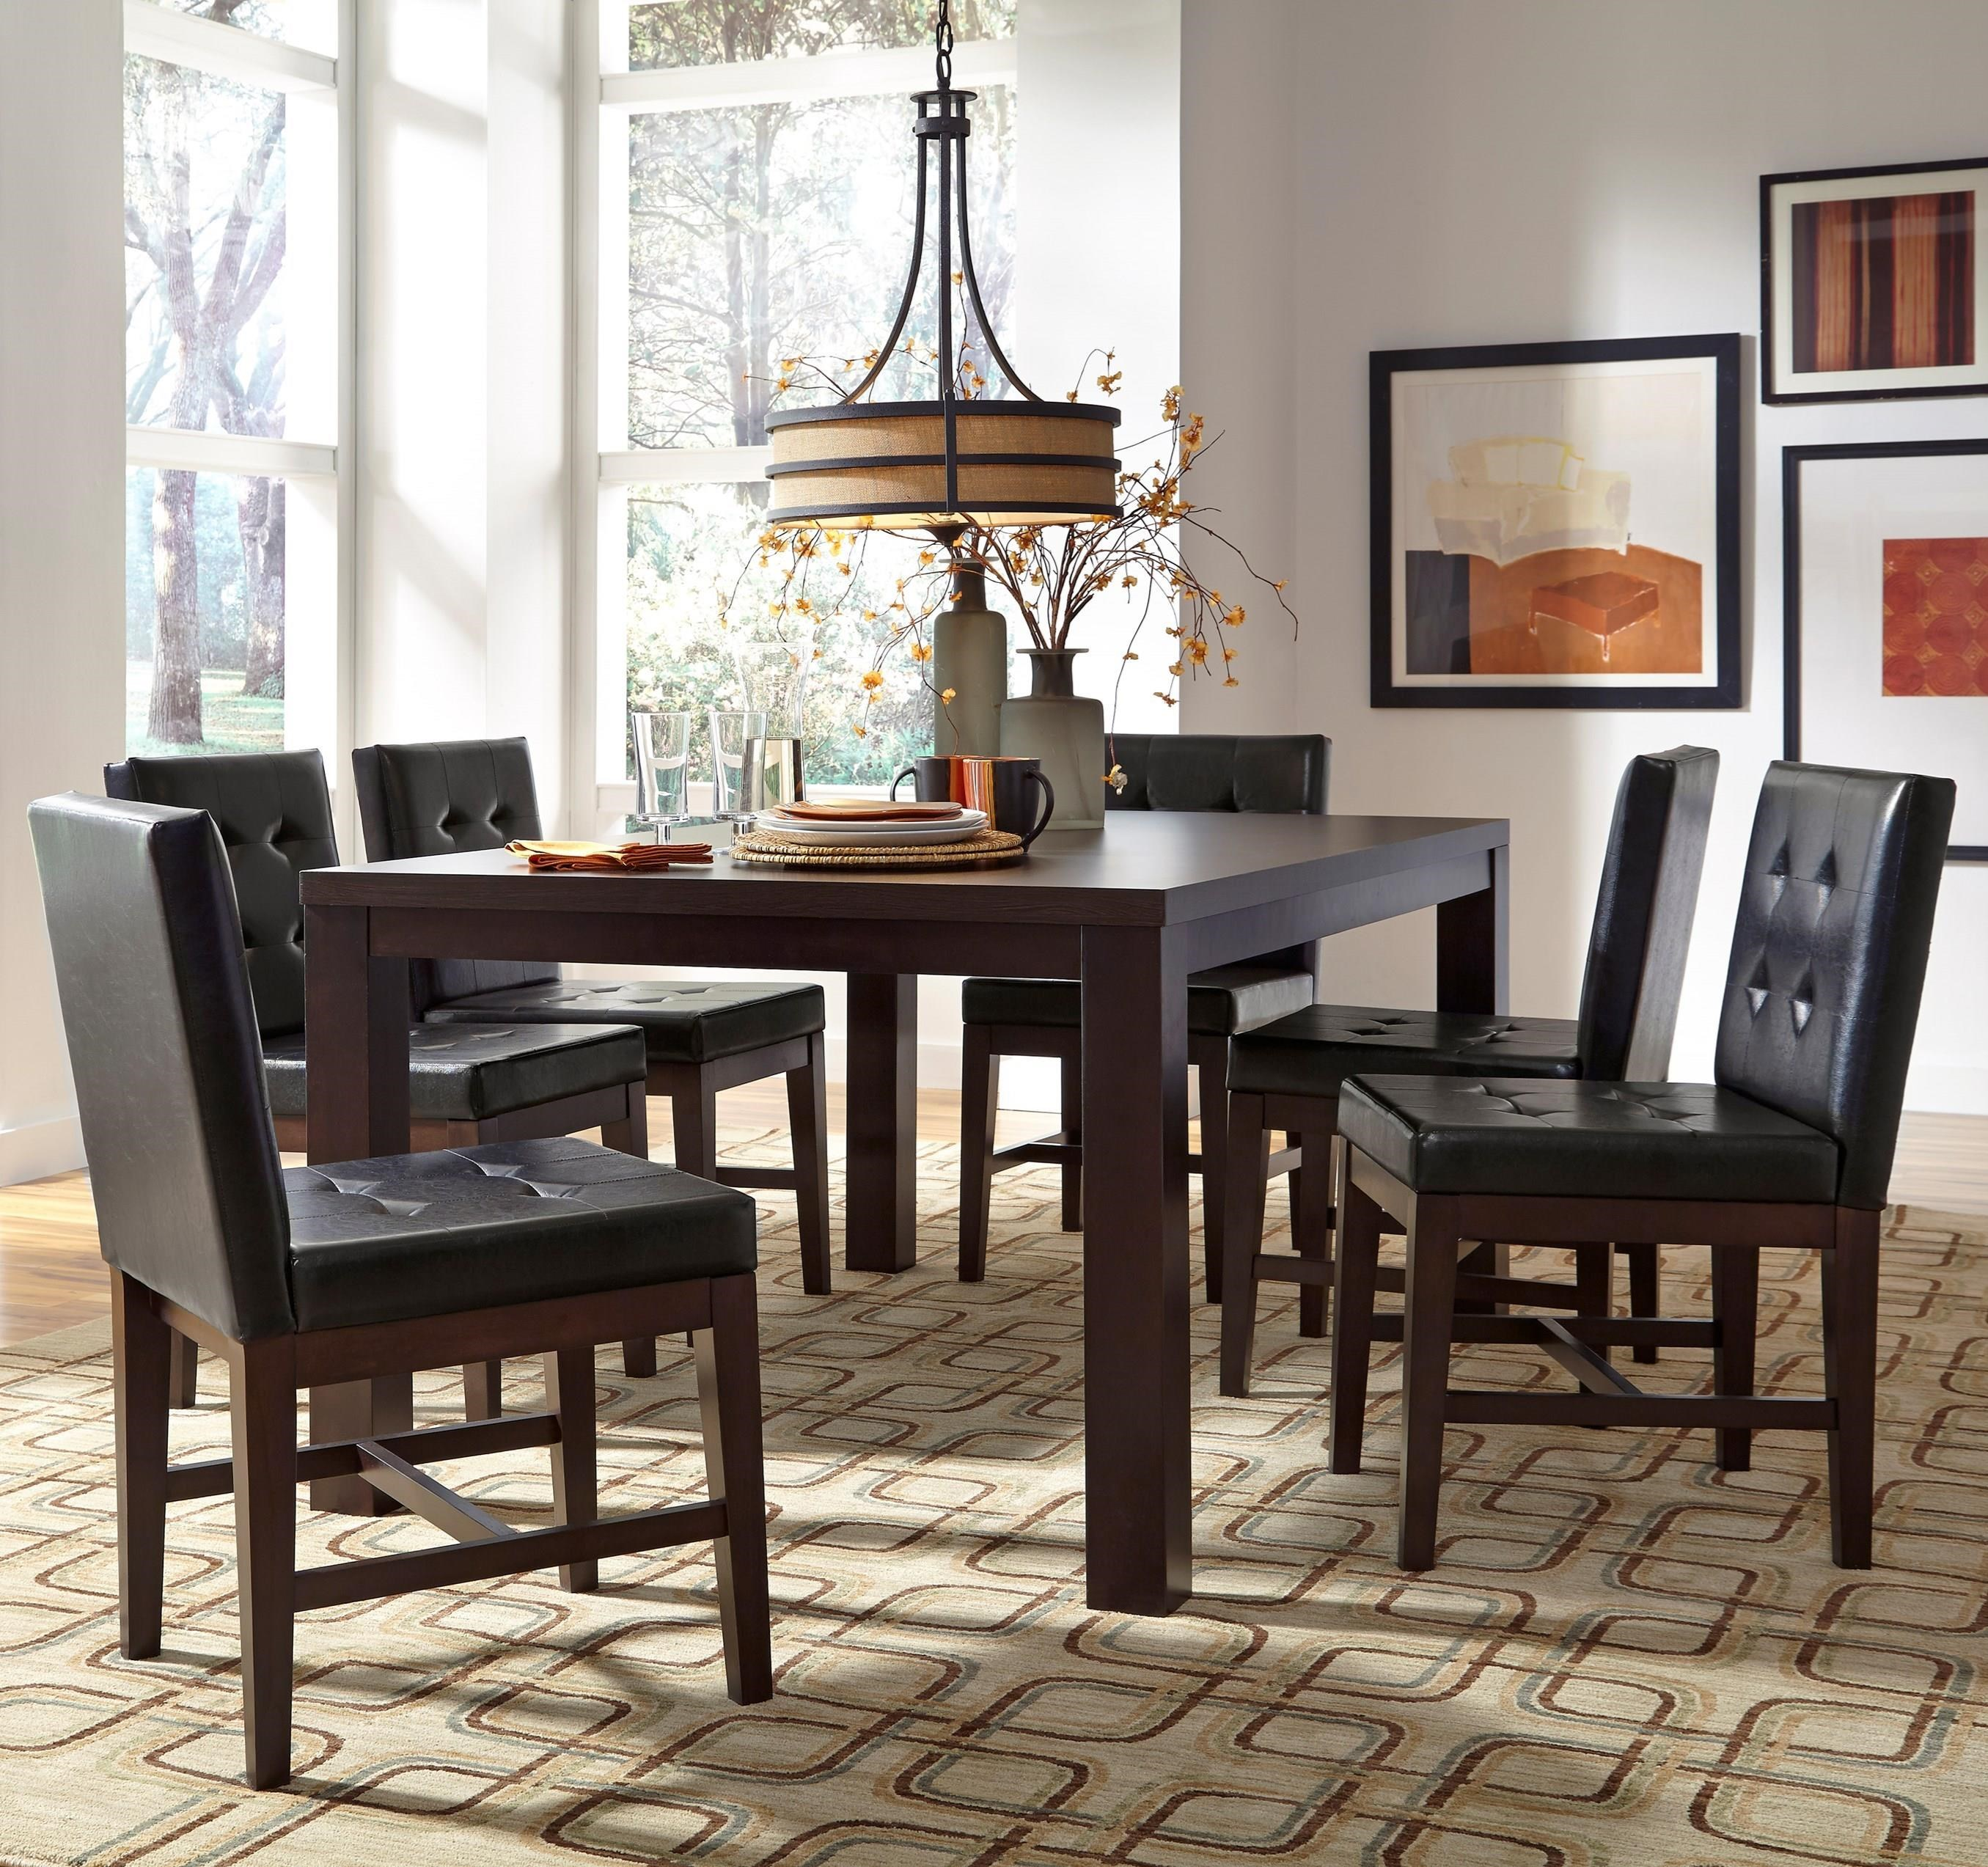 Athena 7pc Dining Room Group by Progressive Furniture at Value City Furniture